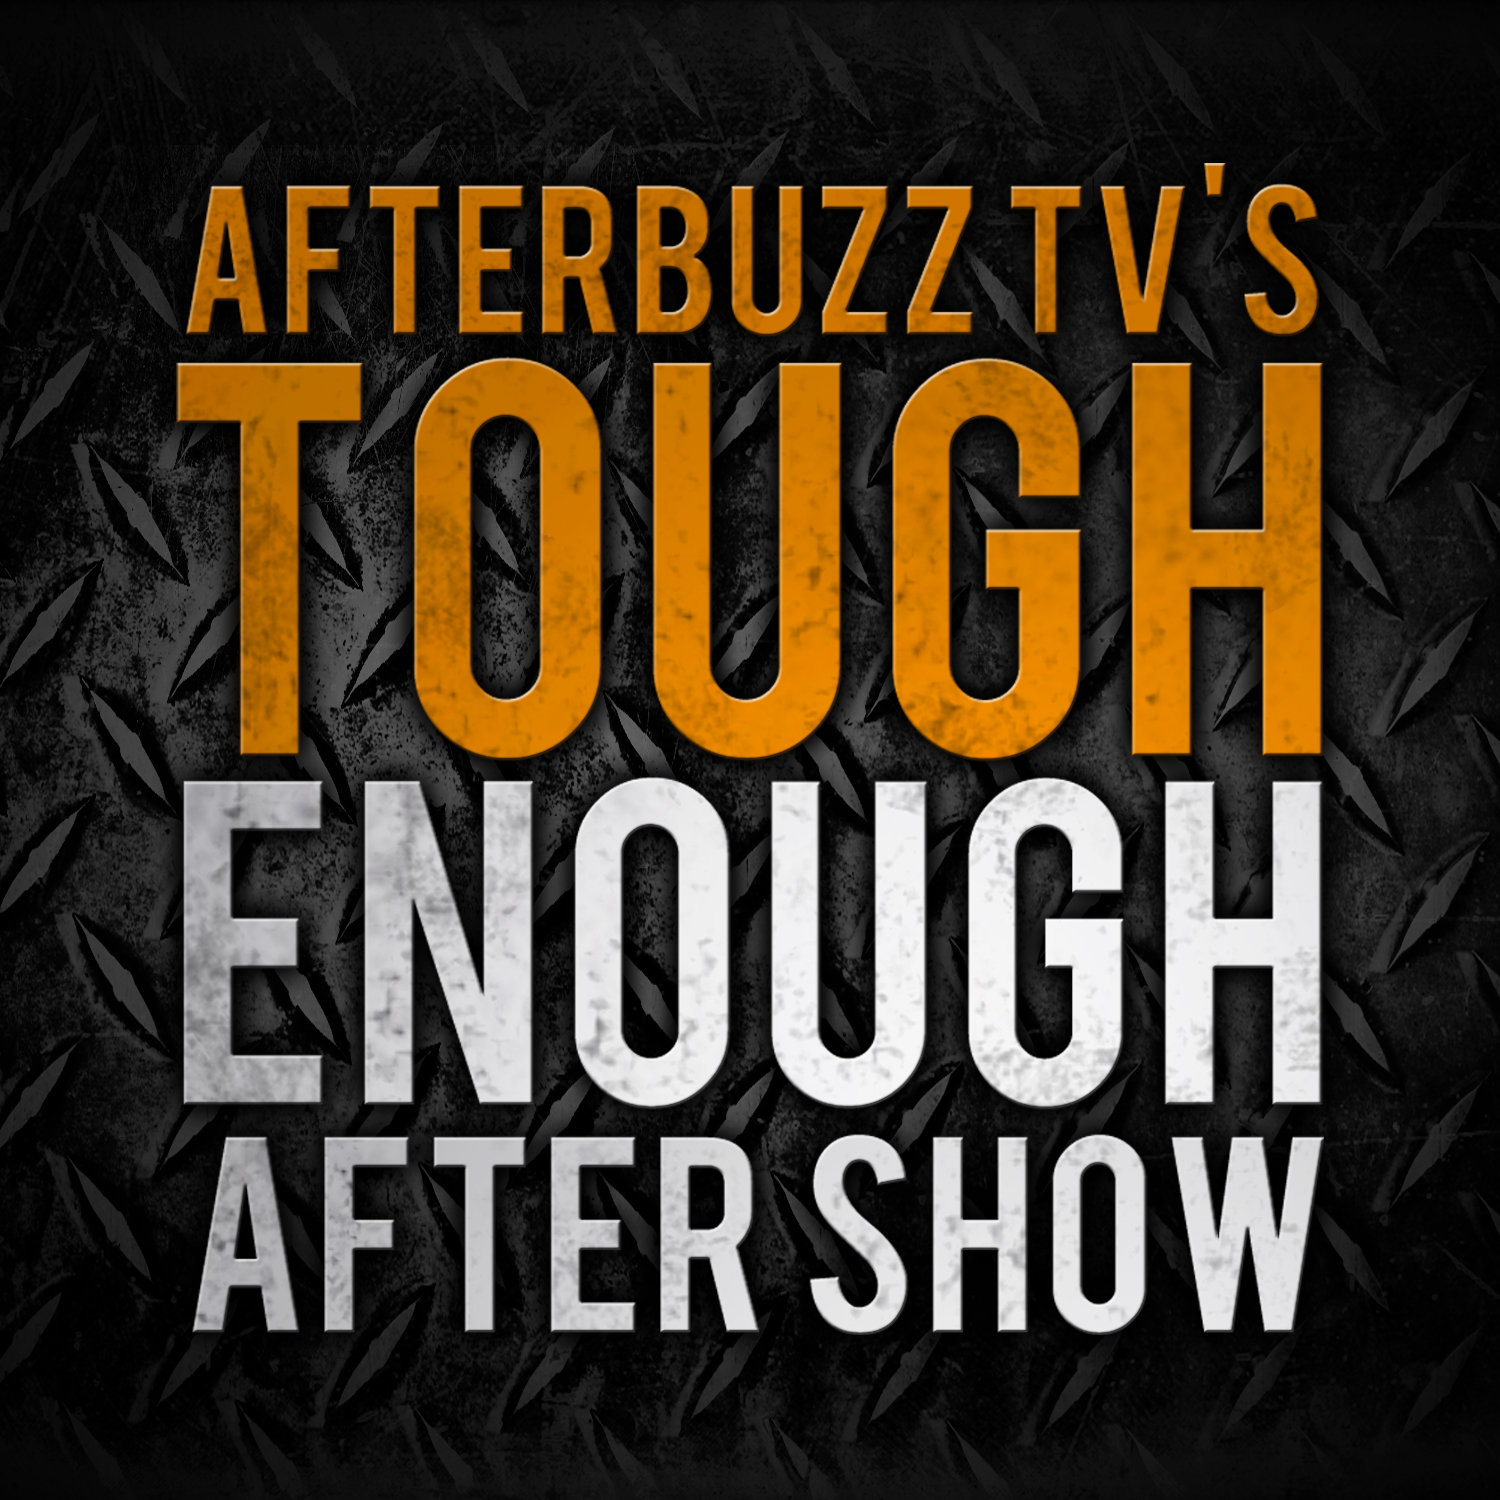 Tough Enough After Show